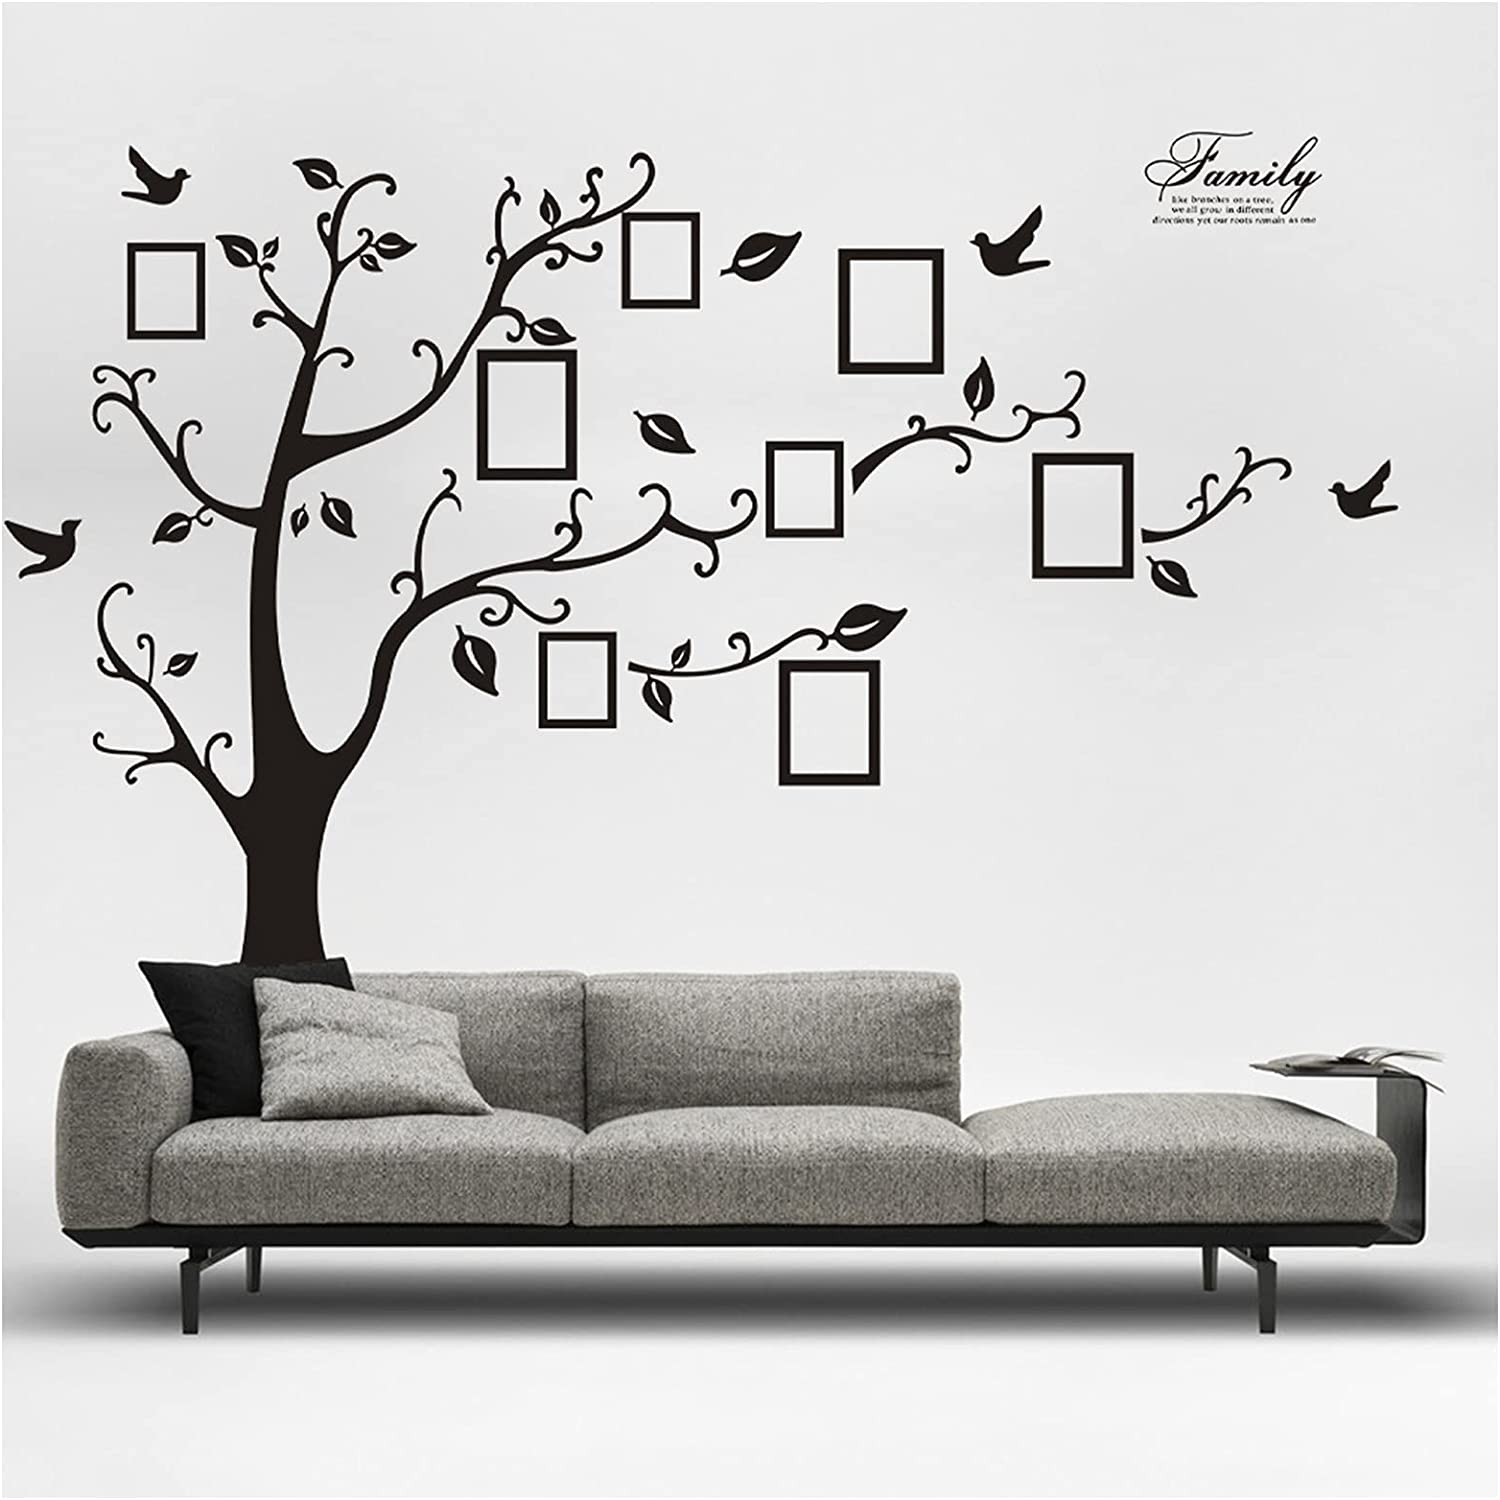 98 x 71 inch Photo Tree Wall Stickers Family Photo Frame Tree Window Decals Decorations Murals Wall Art Decorative Sticker for Kids Living Room Bedroom Nursery Playroom Jungle Party Decor Supplies